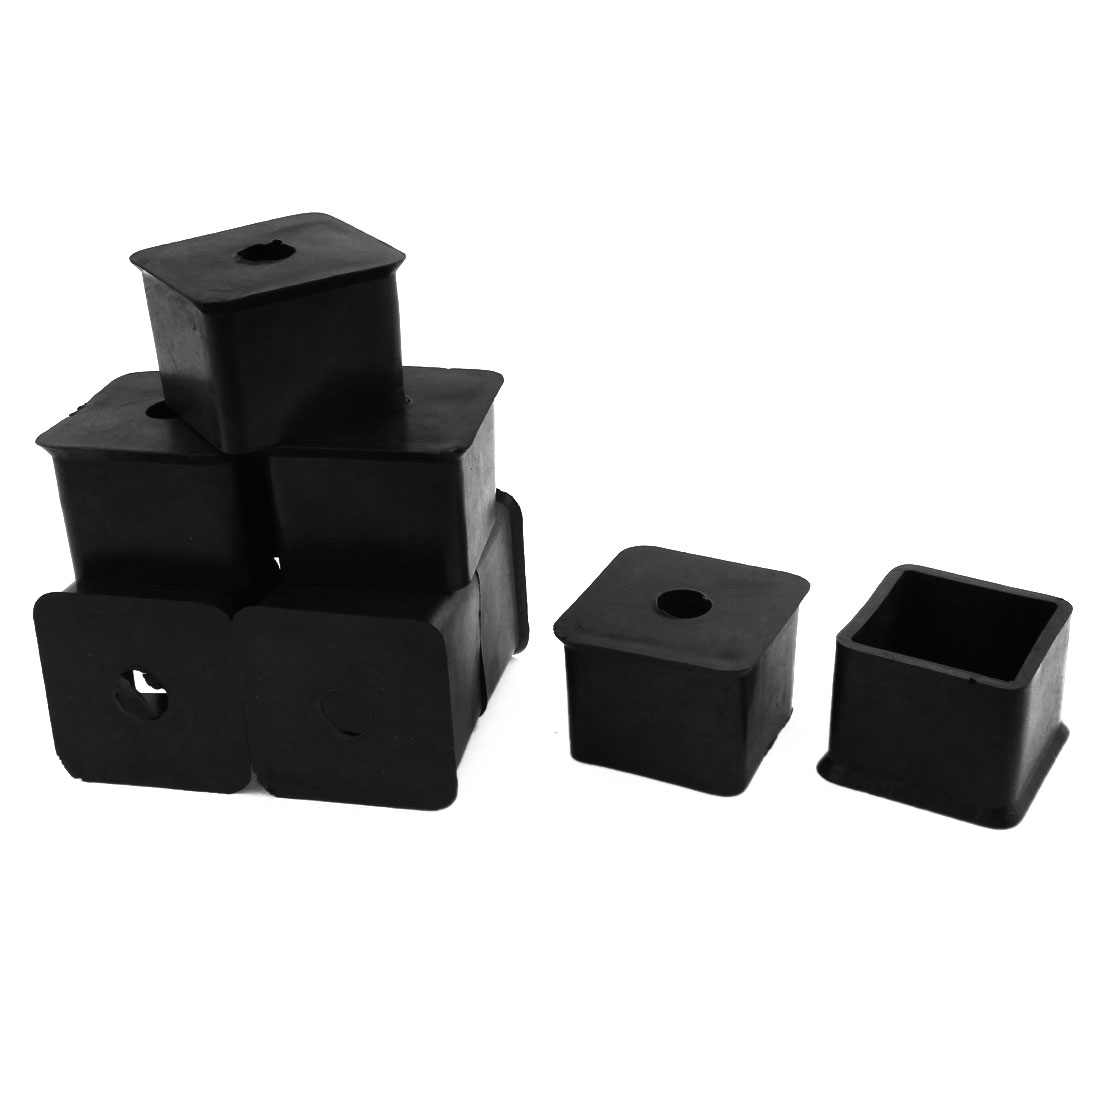 35mm x 35mm Square Rubber Chair Table Leg End Caps Furniture Foot Covers 9 Pcs